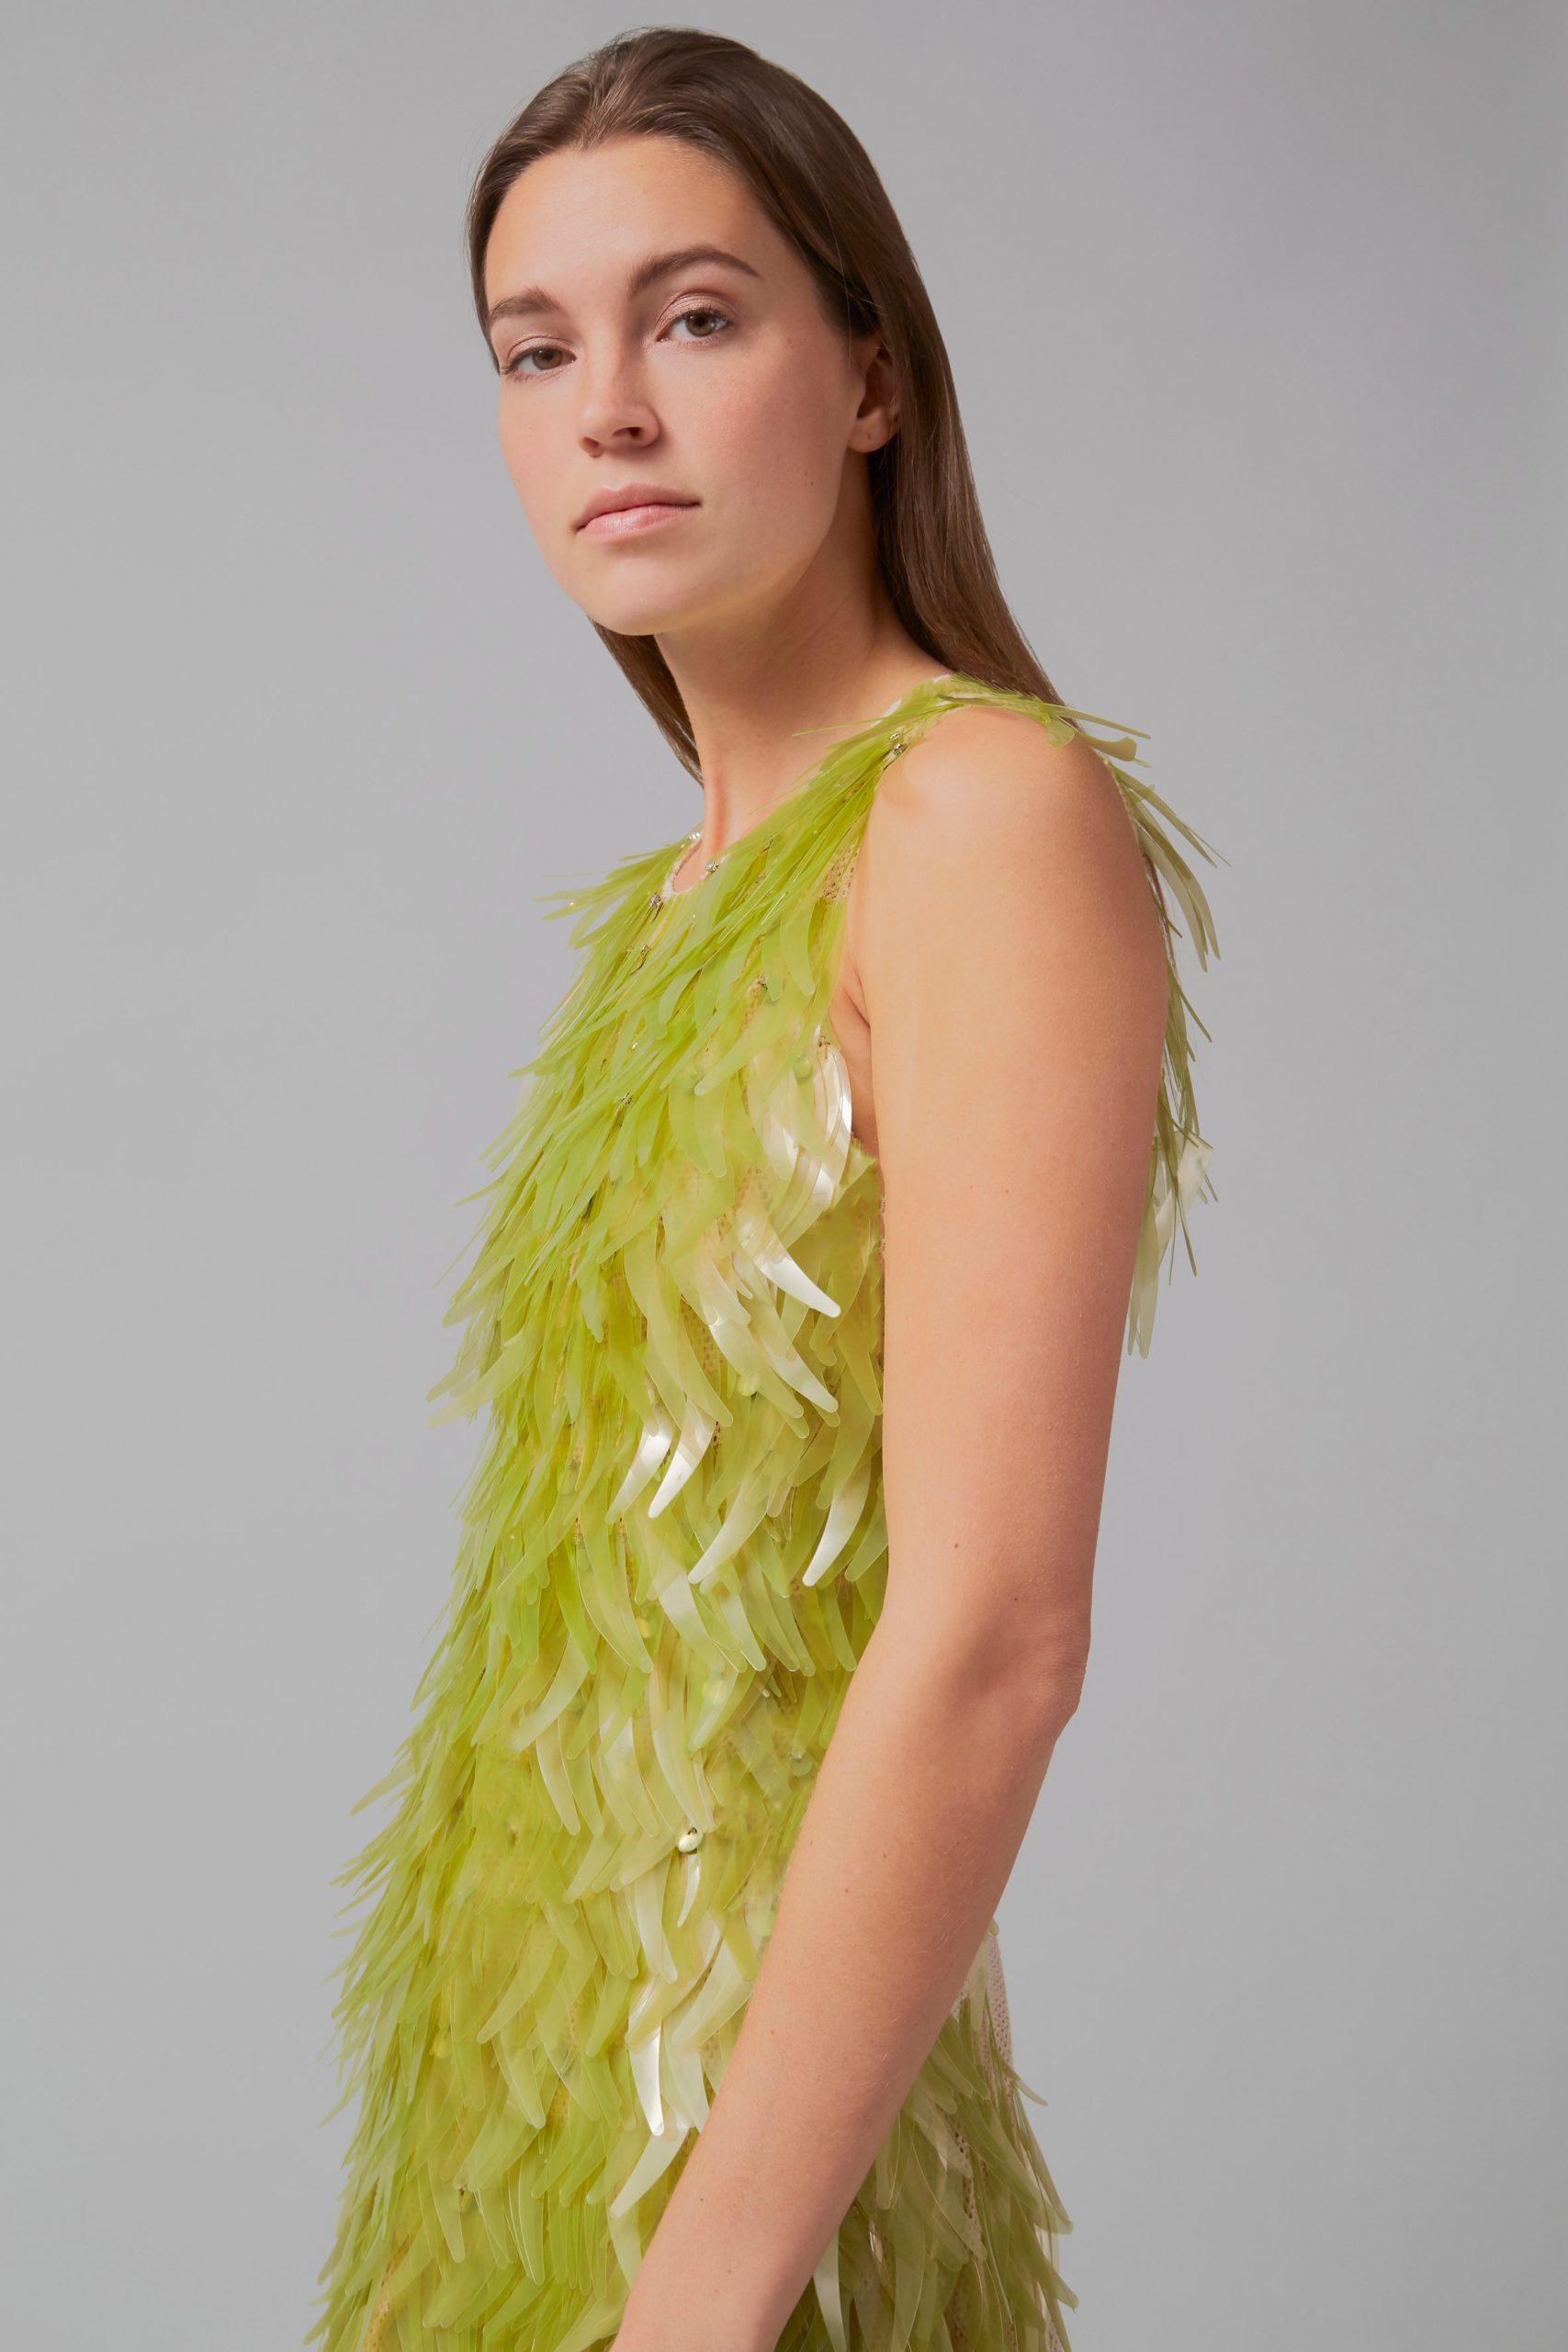 Side profile of algae sequin dress by Phillip Lim as part of One X One project